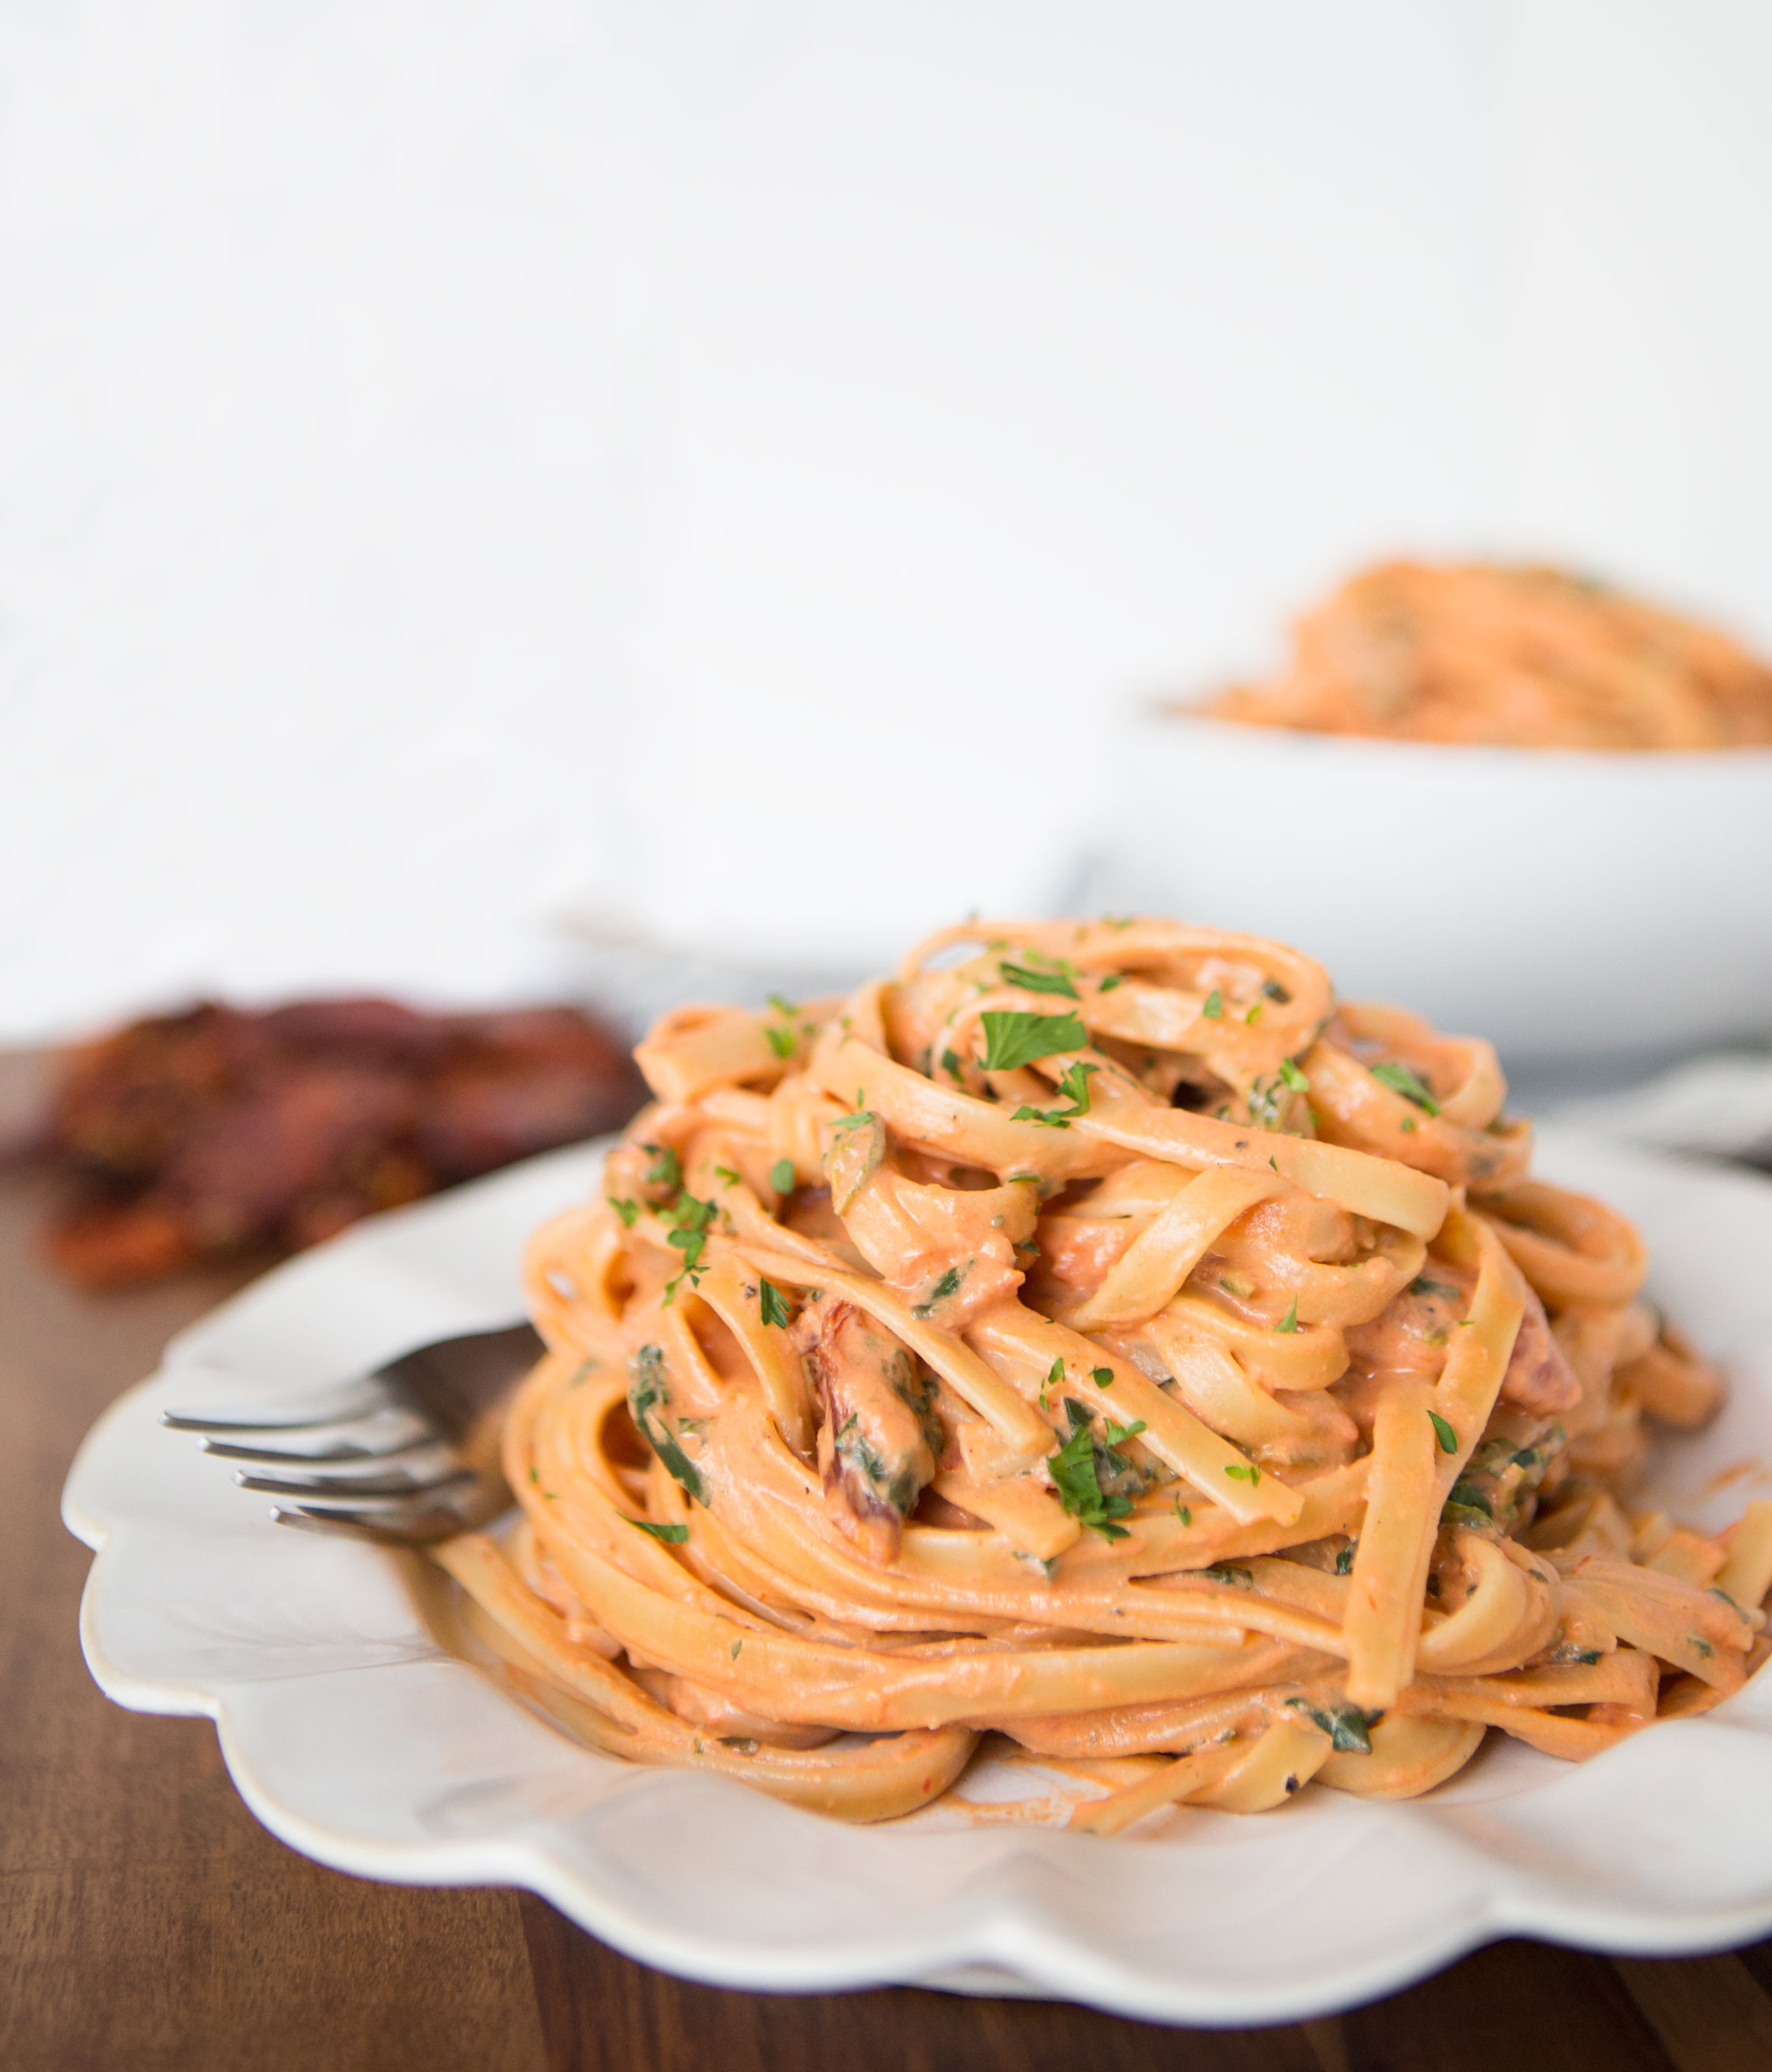 Creamy Sundried Tomato Fettuccine Table For Two By Julie Chiou